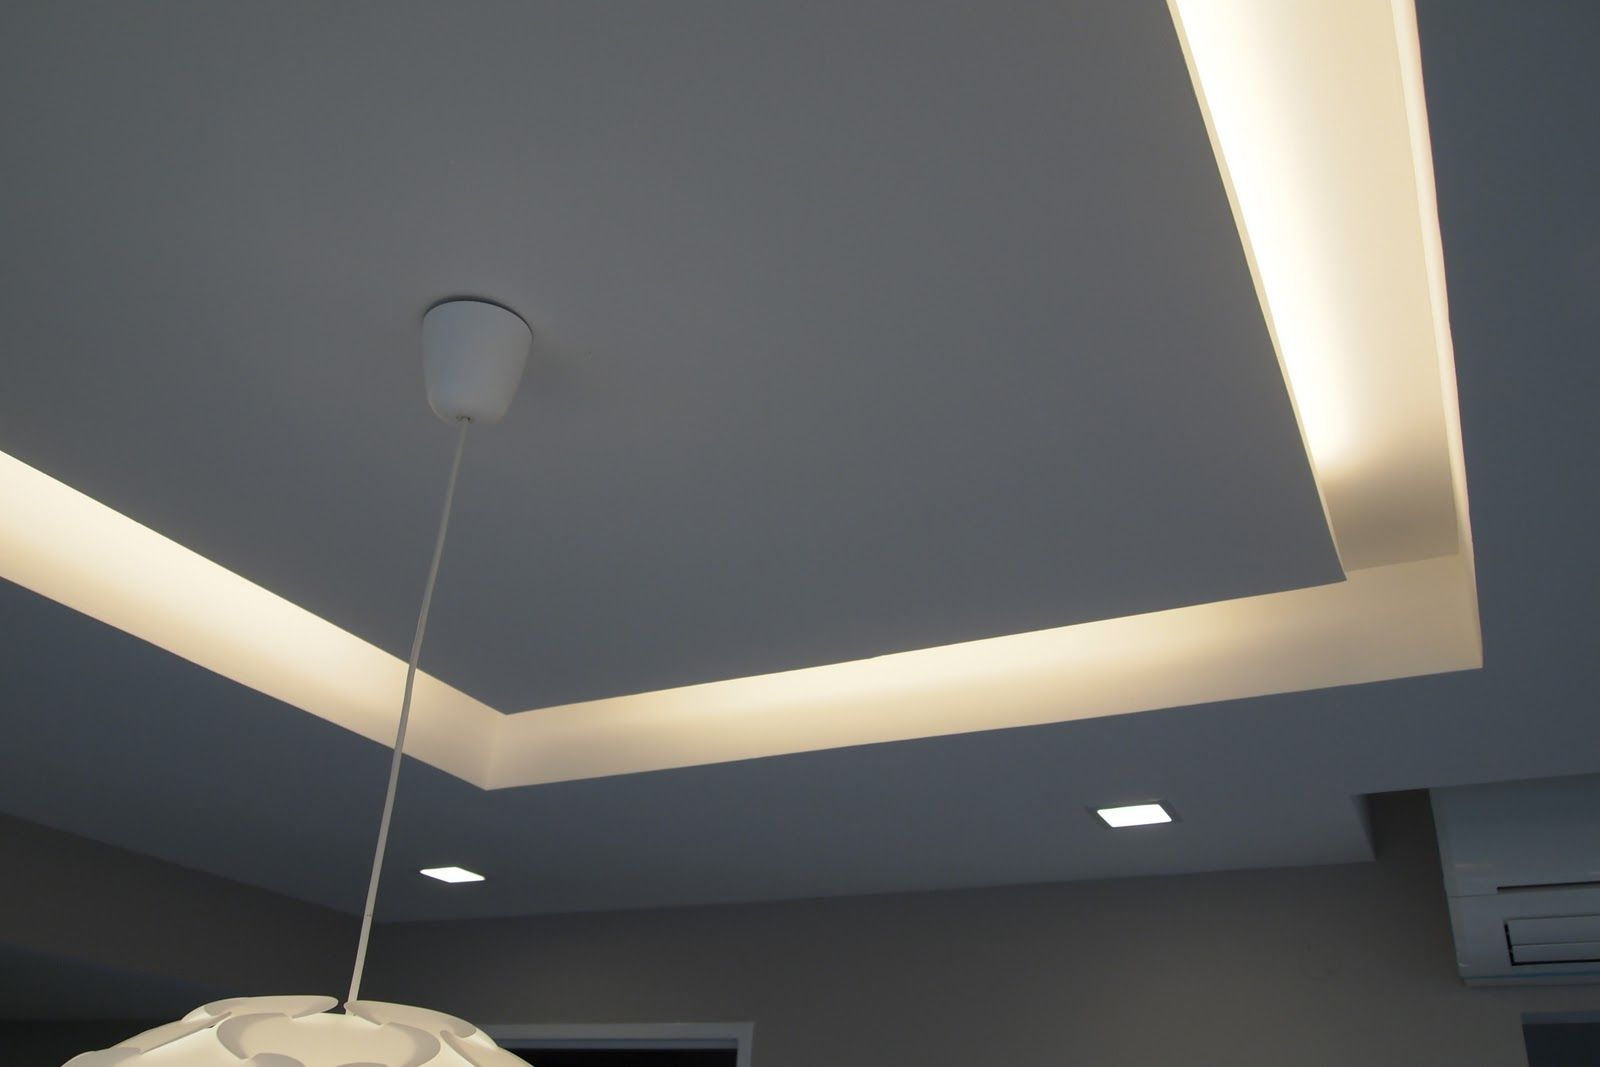 Coved Ceiling Living Room Cove Lighting Ceiling Floating